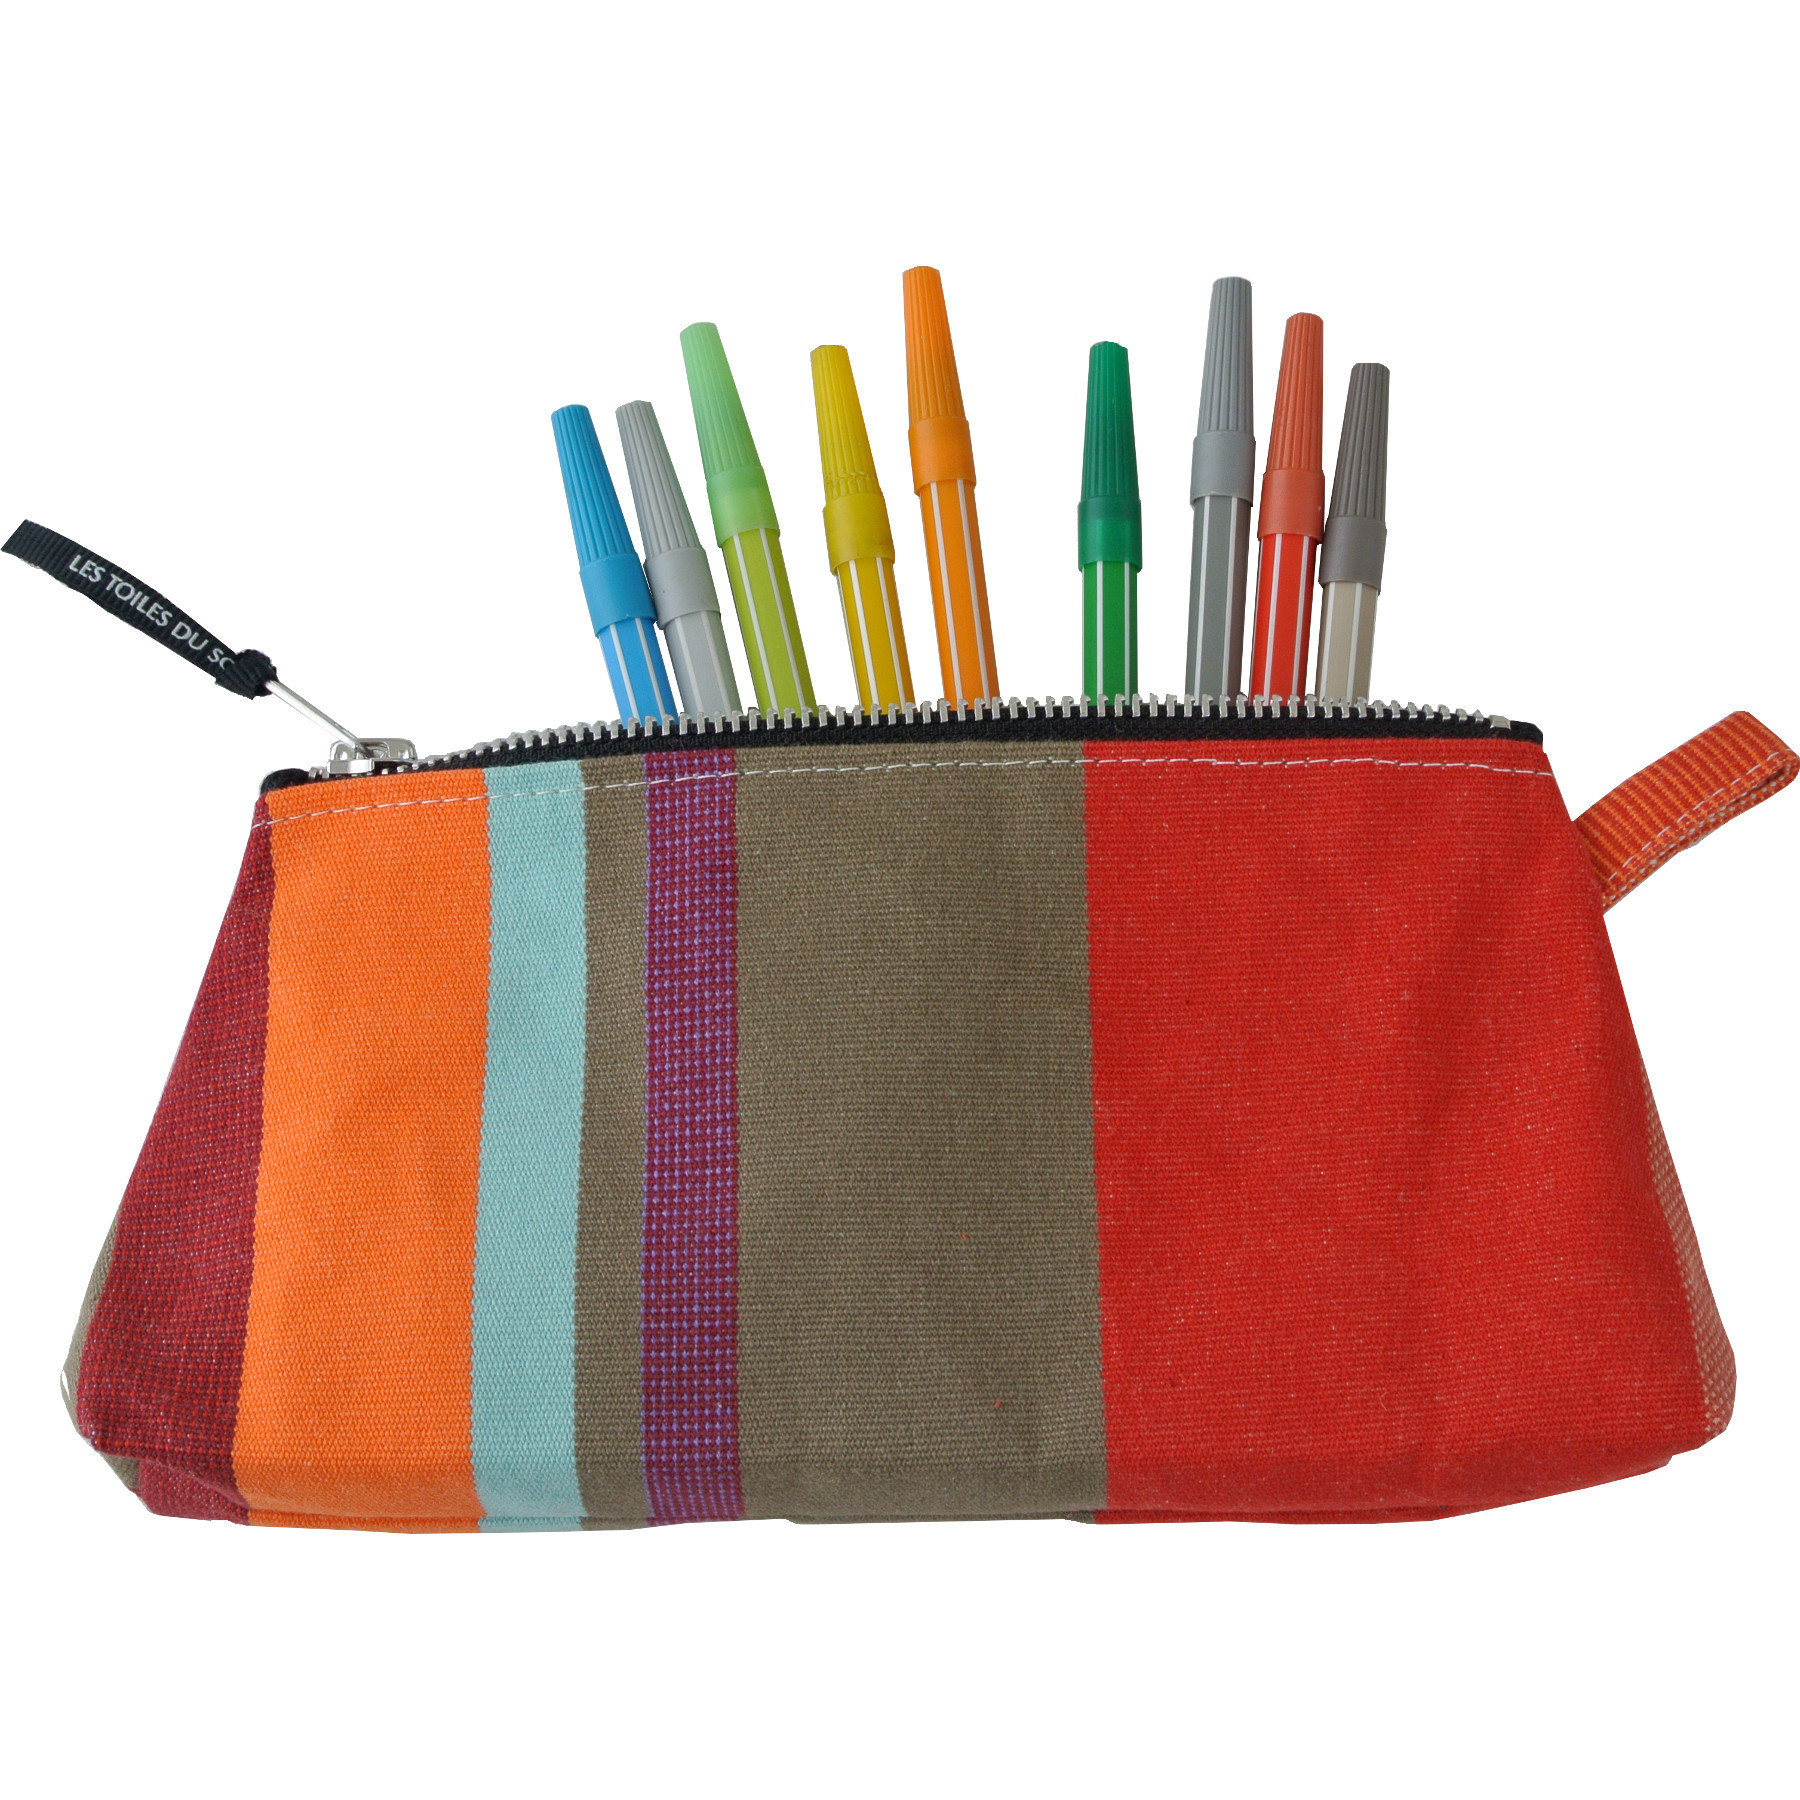 Pencil case COLLIOURE